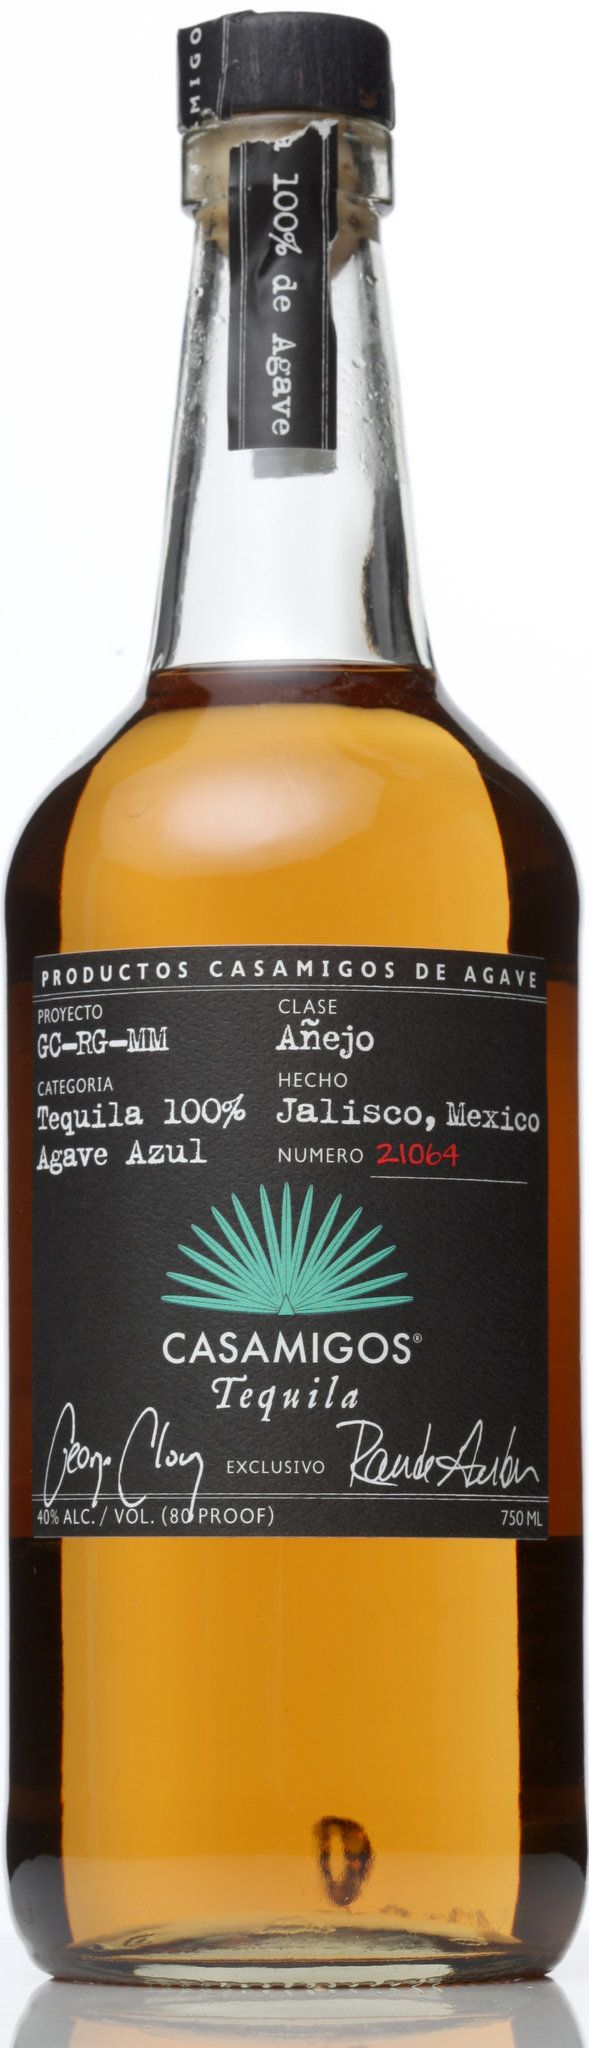 Casamigos, which the actor founded with the entertainment impresario Rande Gerber, drew the attention of the spirits giant Diageo.